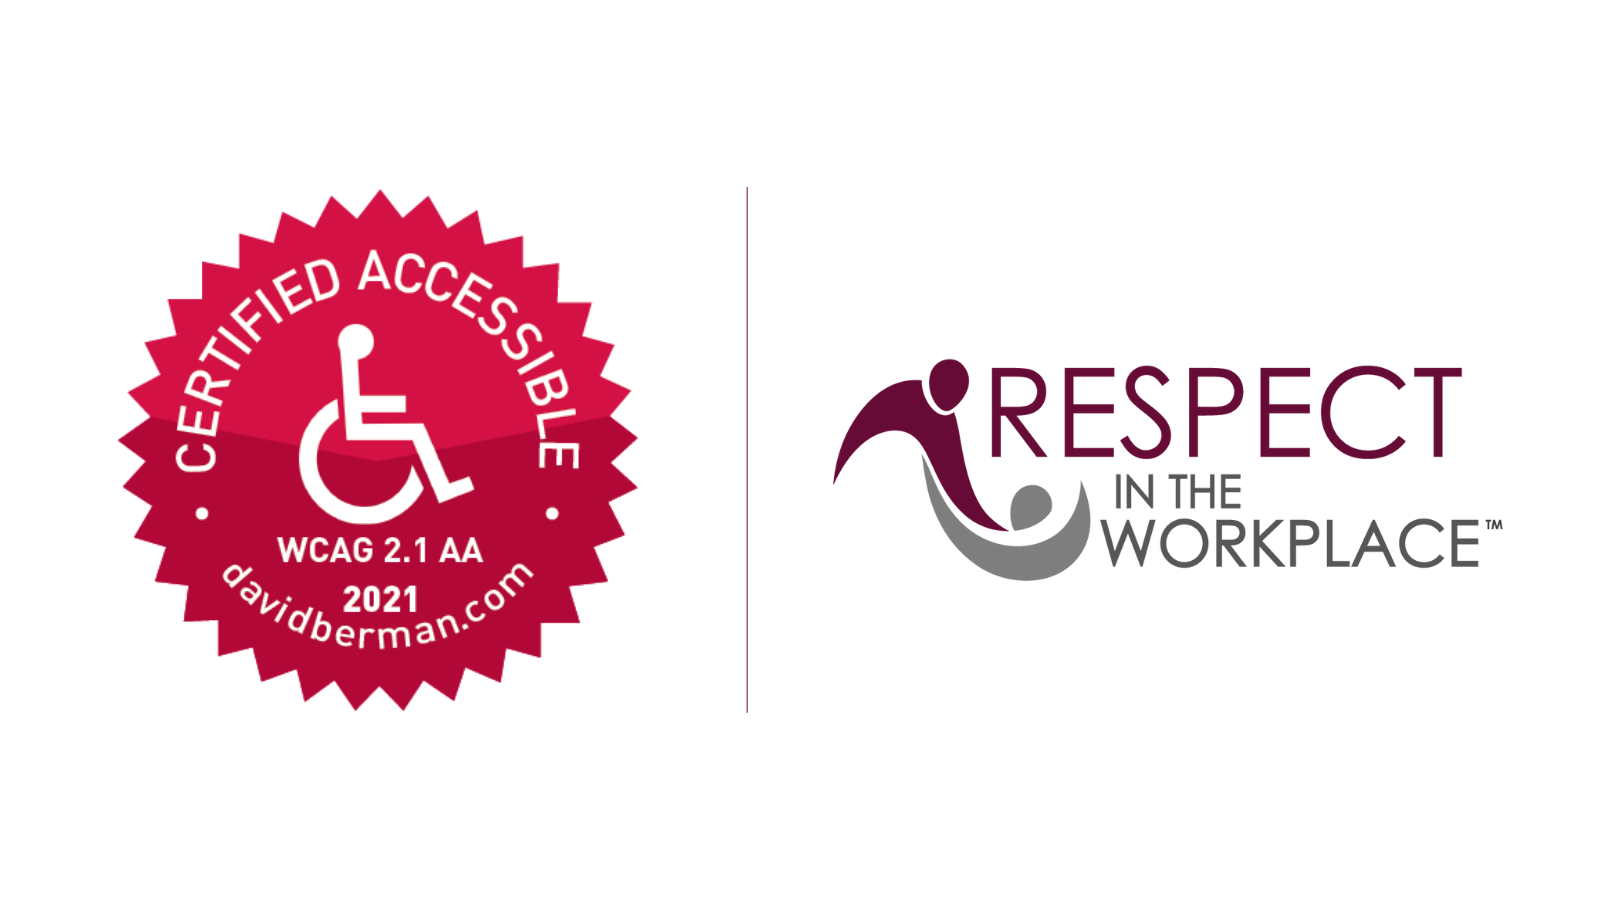 WCAG 2.1 Accessibility Certification – Respect in the Workplace program